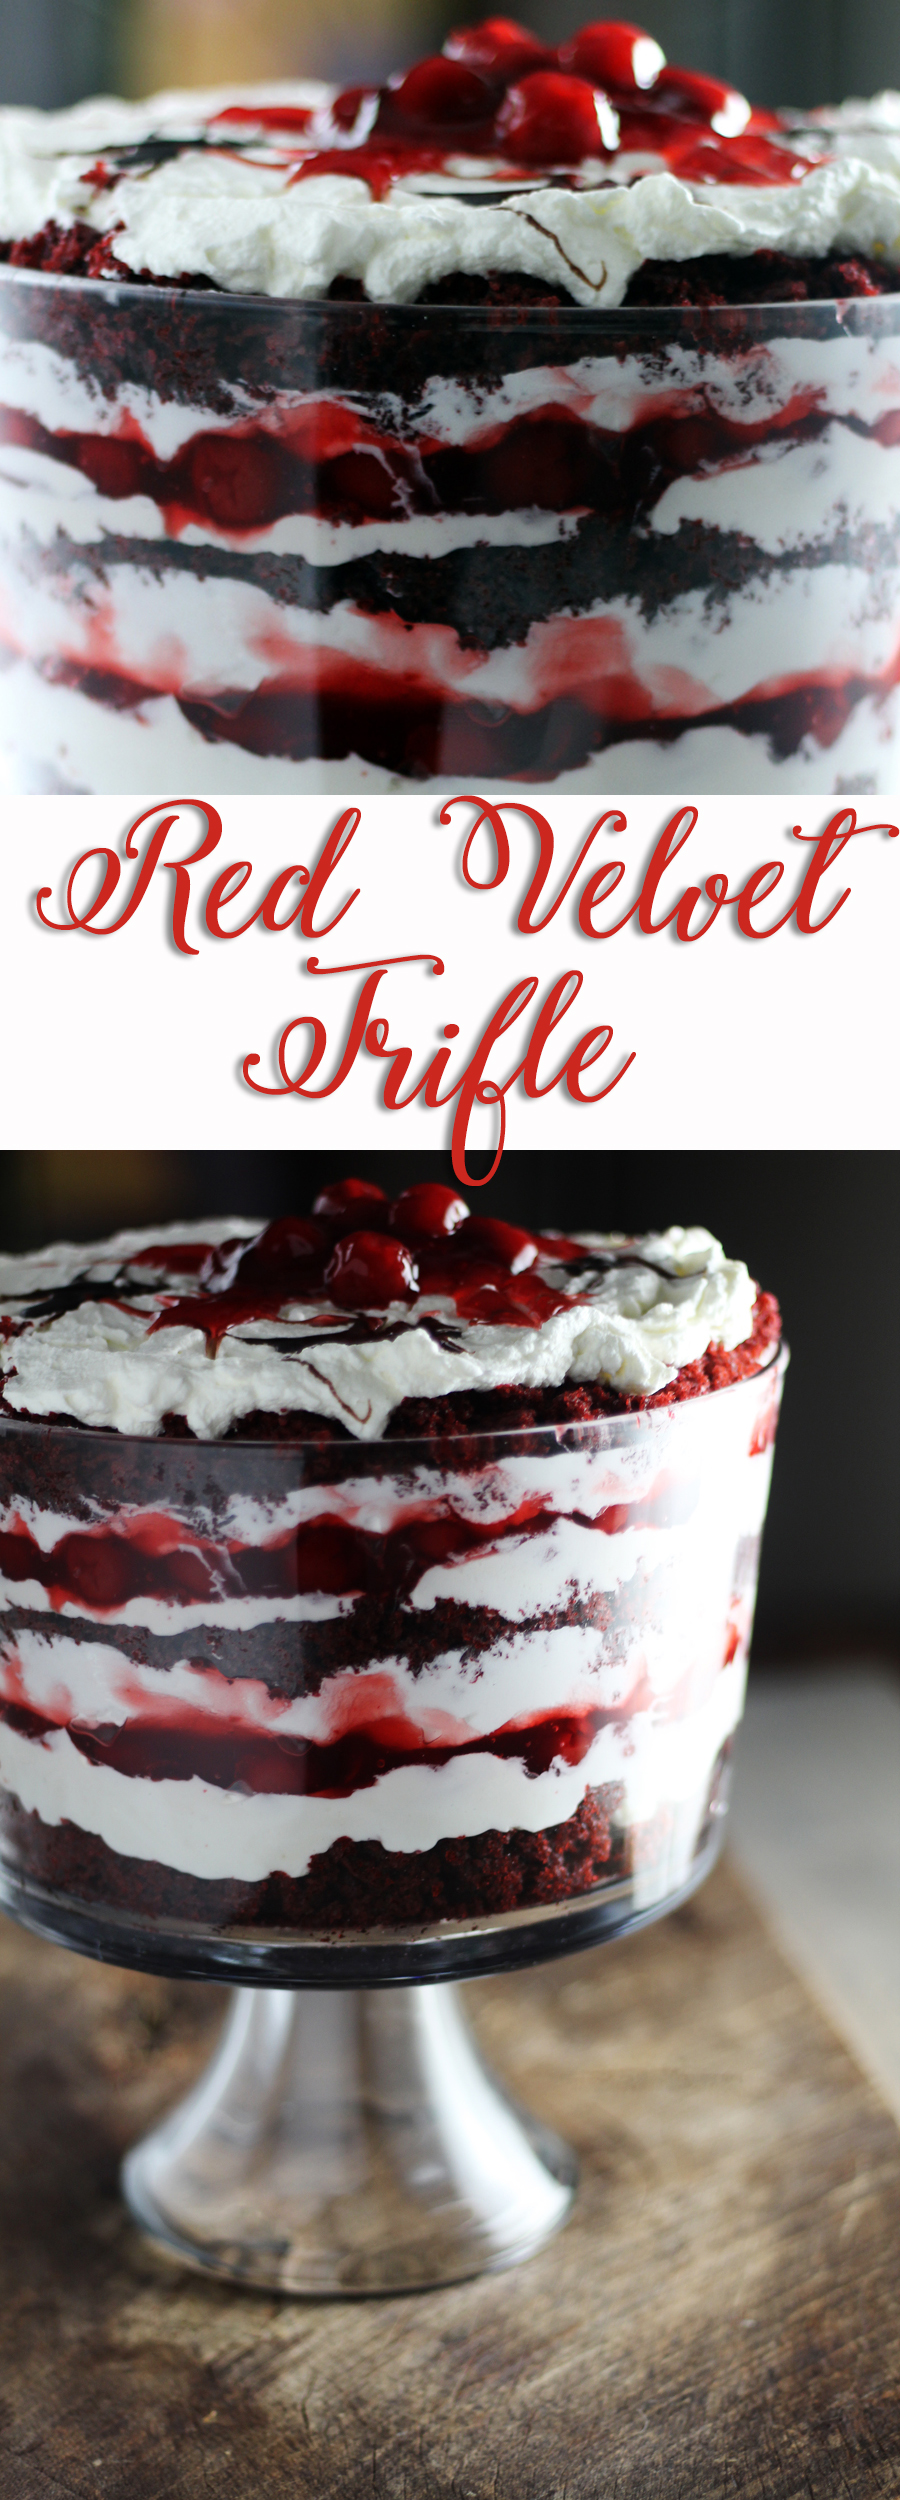 Easy & Delicious Red Velvet Trifle